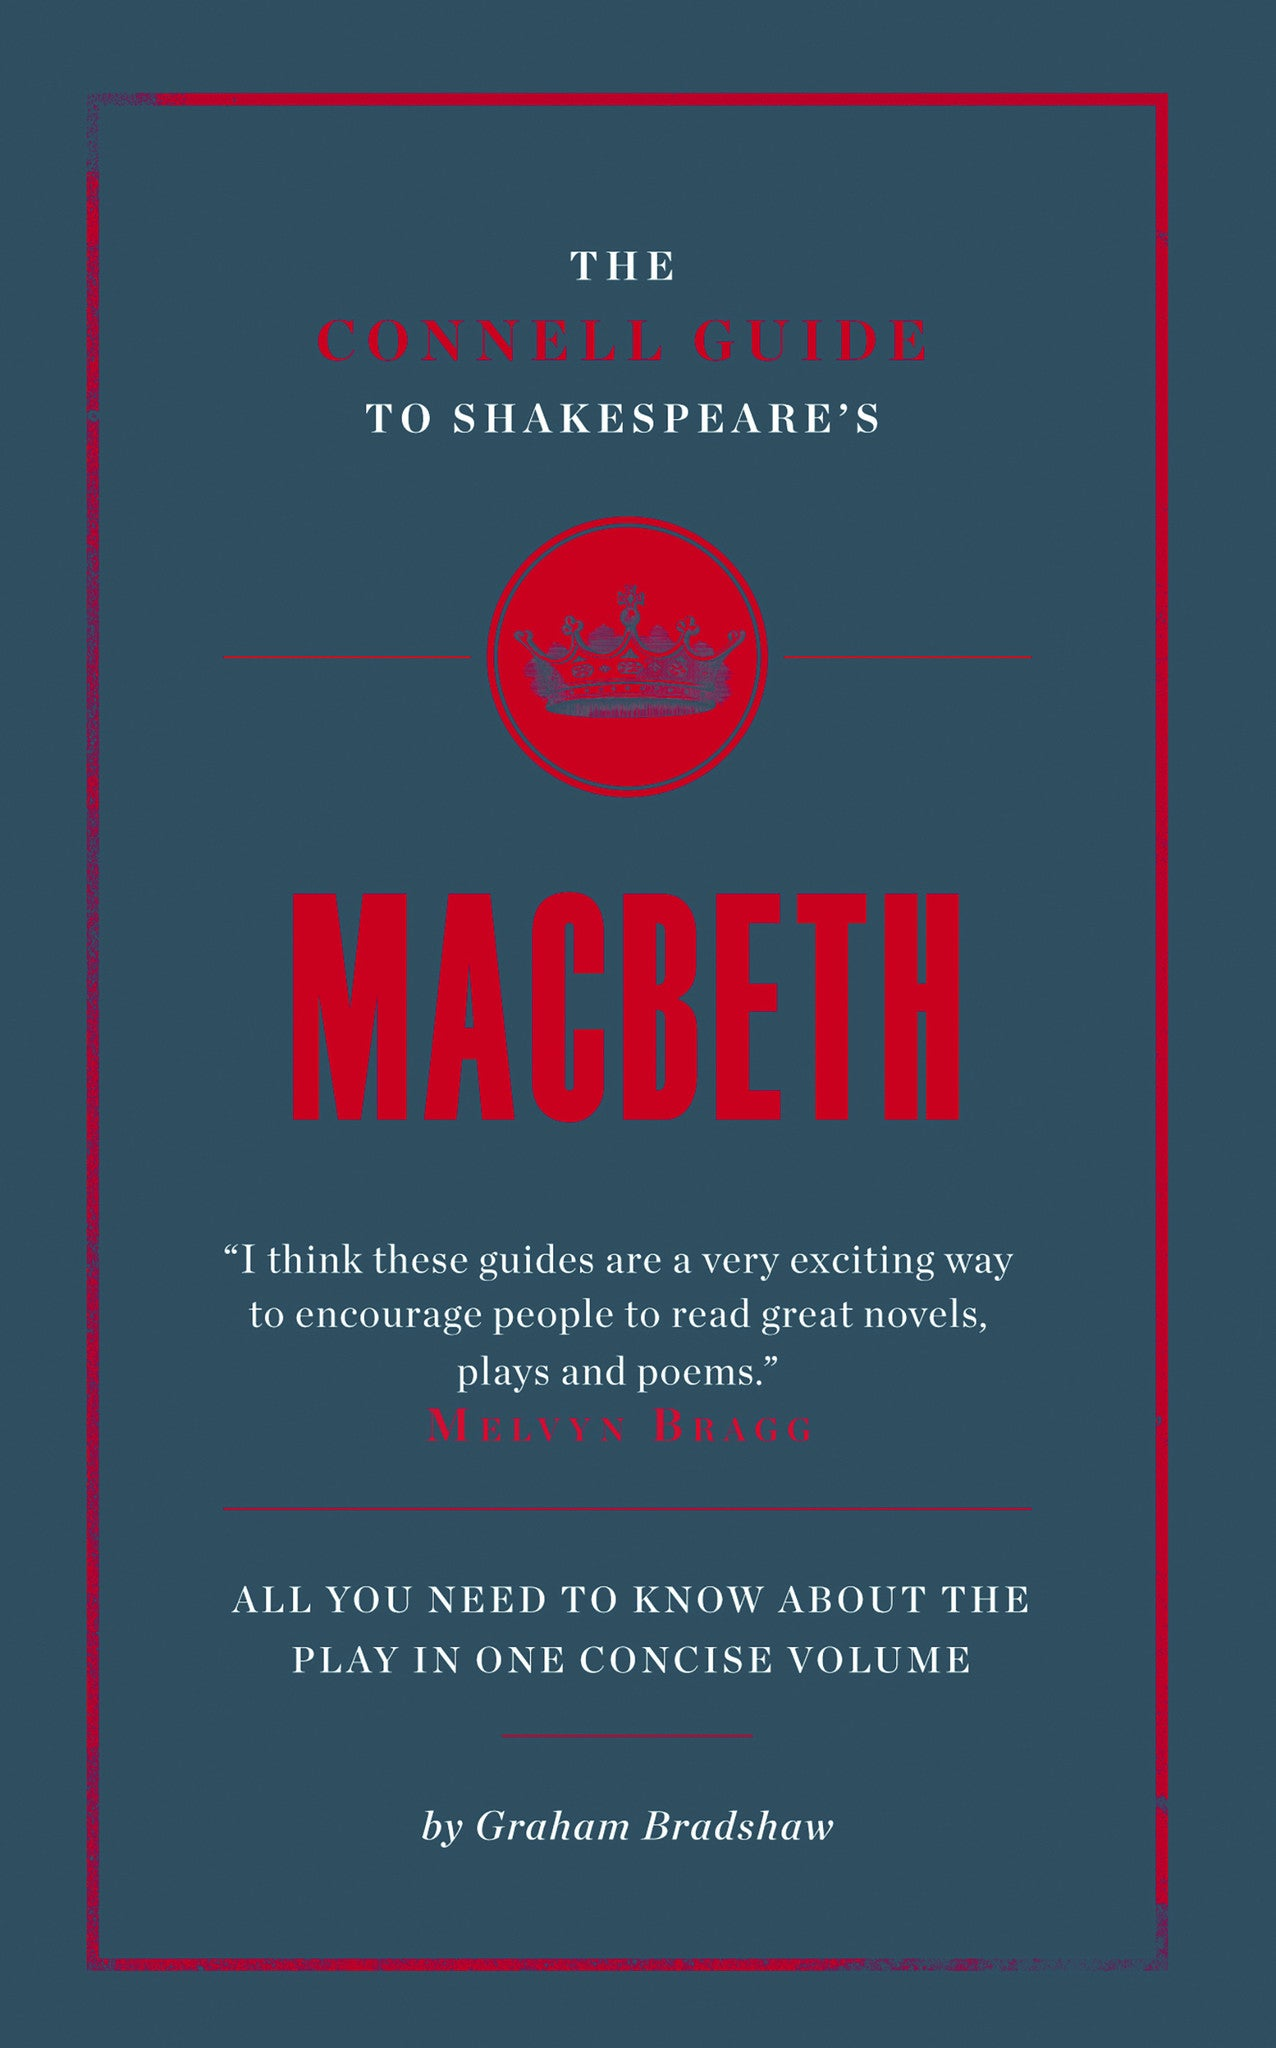 shakespeare s macbeth study guide connell guides shakespeare s macbeth study guide middot shakespeare s macbeth study guide